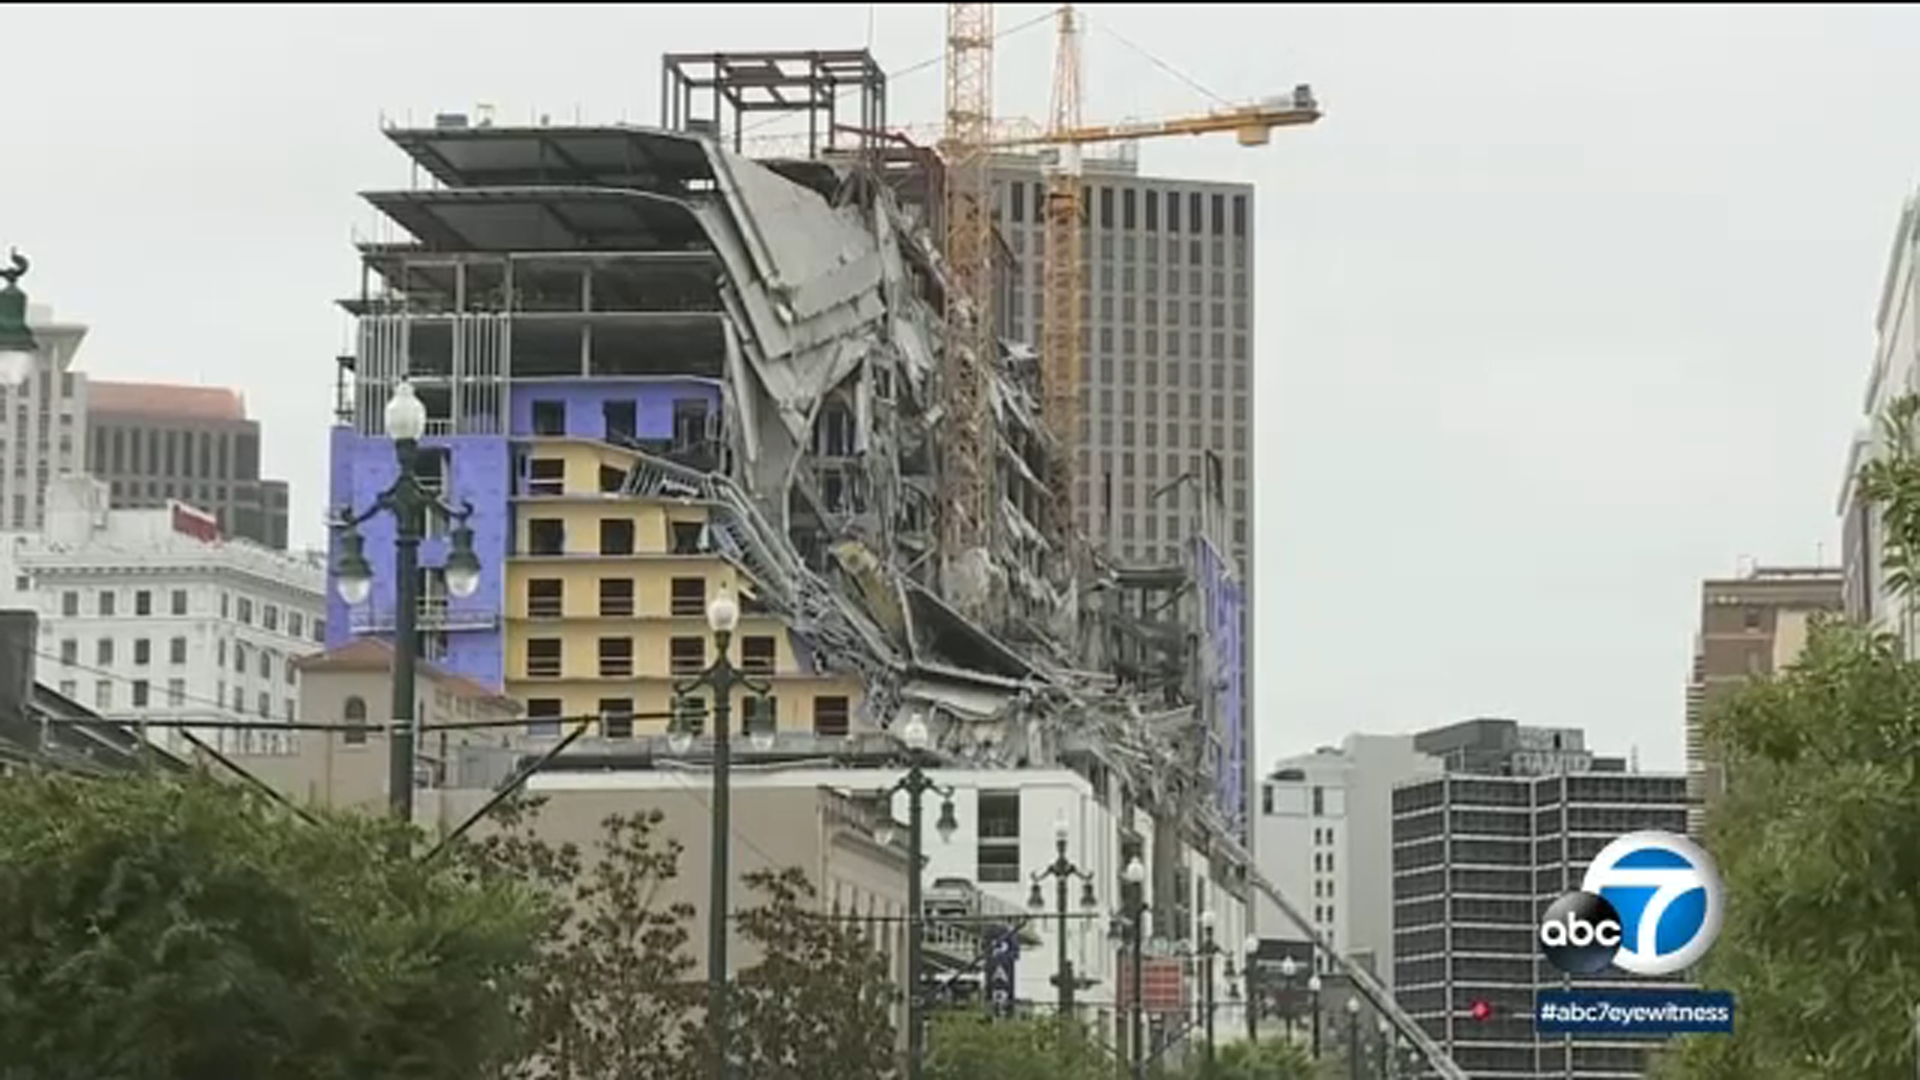 The collapse at the hotel under construction sent workers running on popular Canal Street. At least 1 person died.